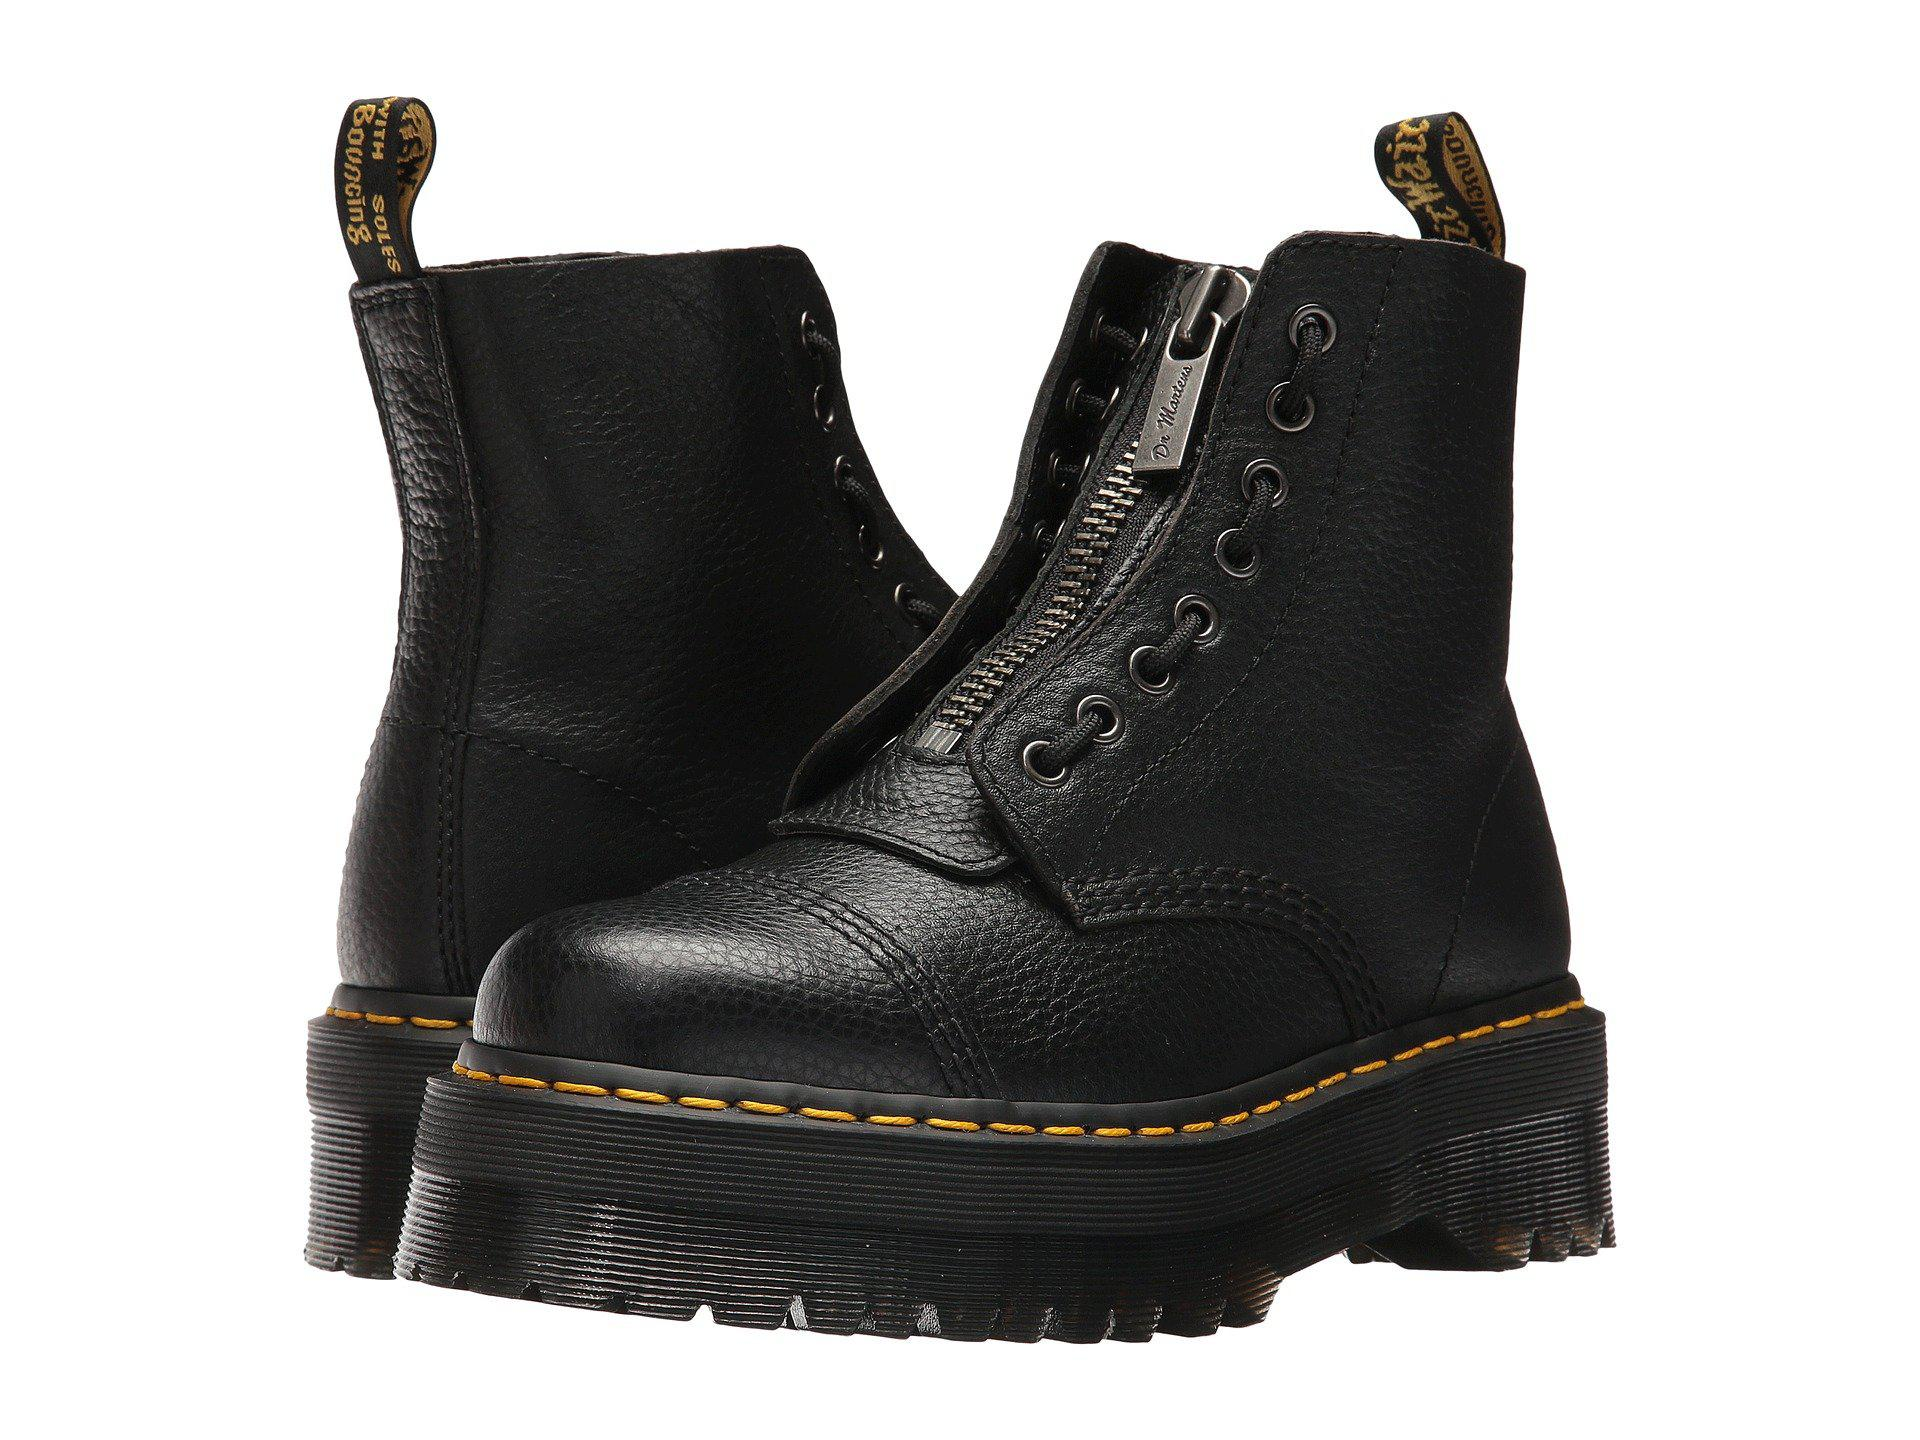 482a43ab Dr. Martens Sinclair Jungle Boot in Black - Lyst